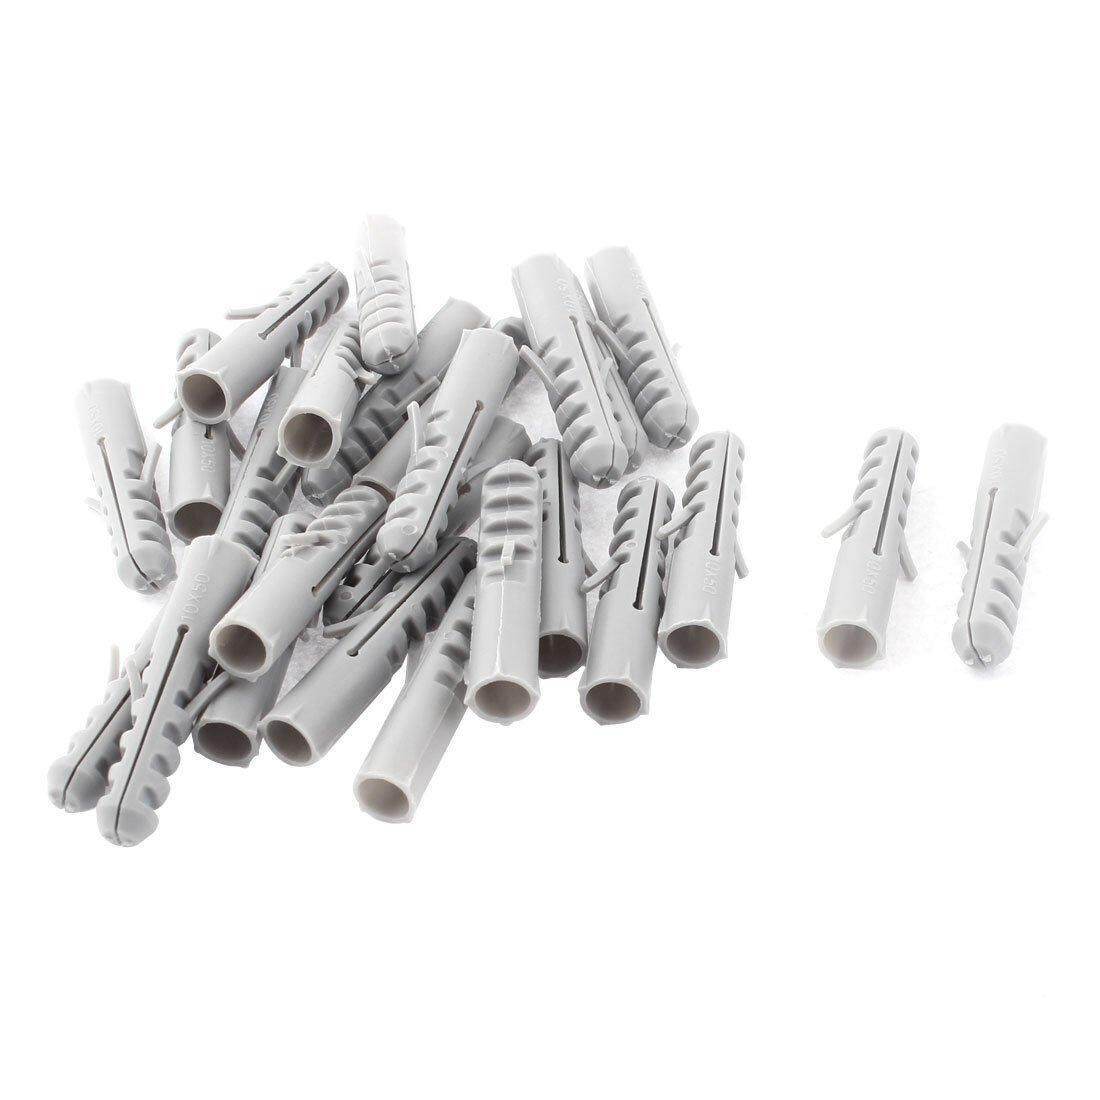 M10x50mm Plastic Anchors Lag Expansion Nails Plugs Screws Clips 25Pcs,gray